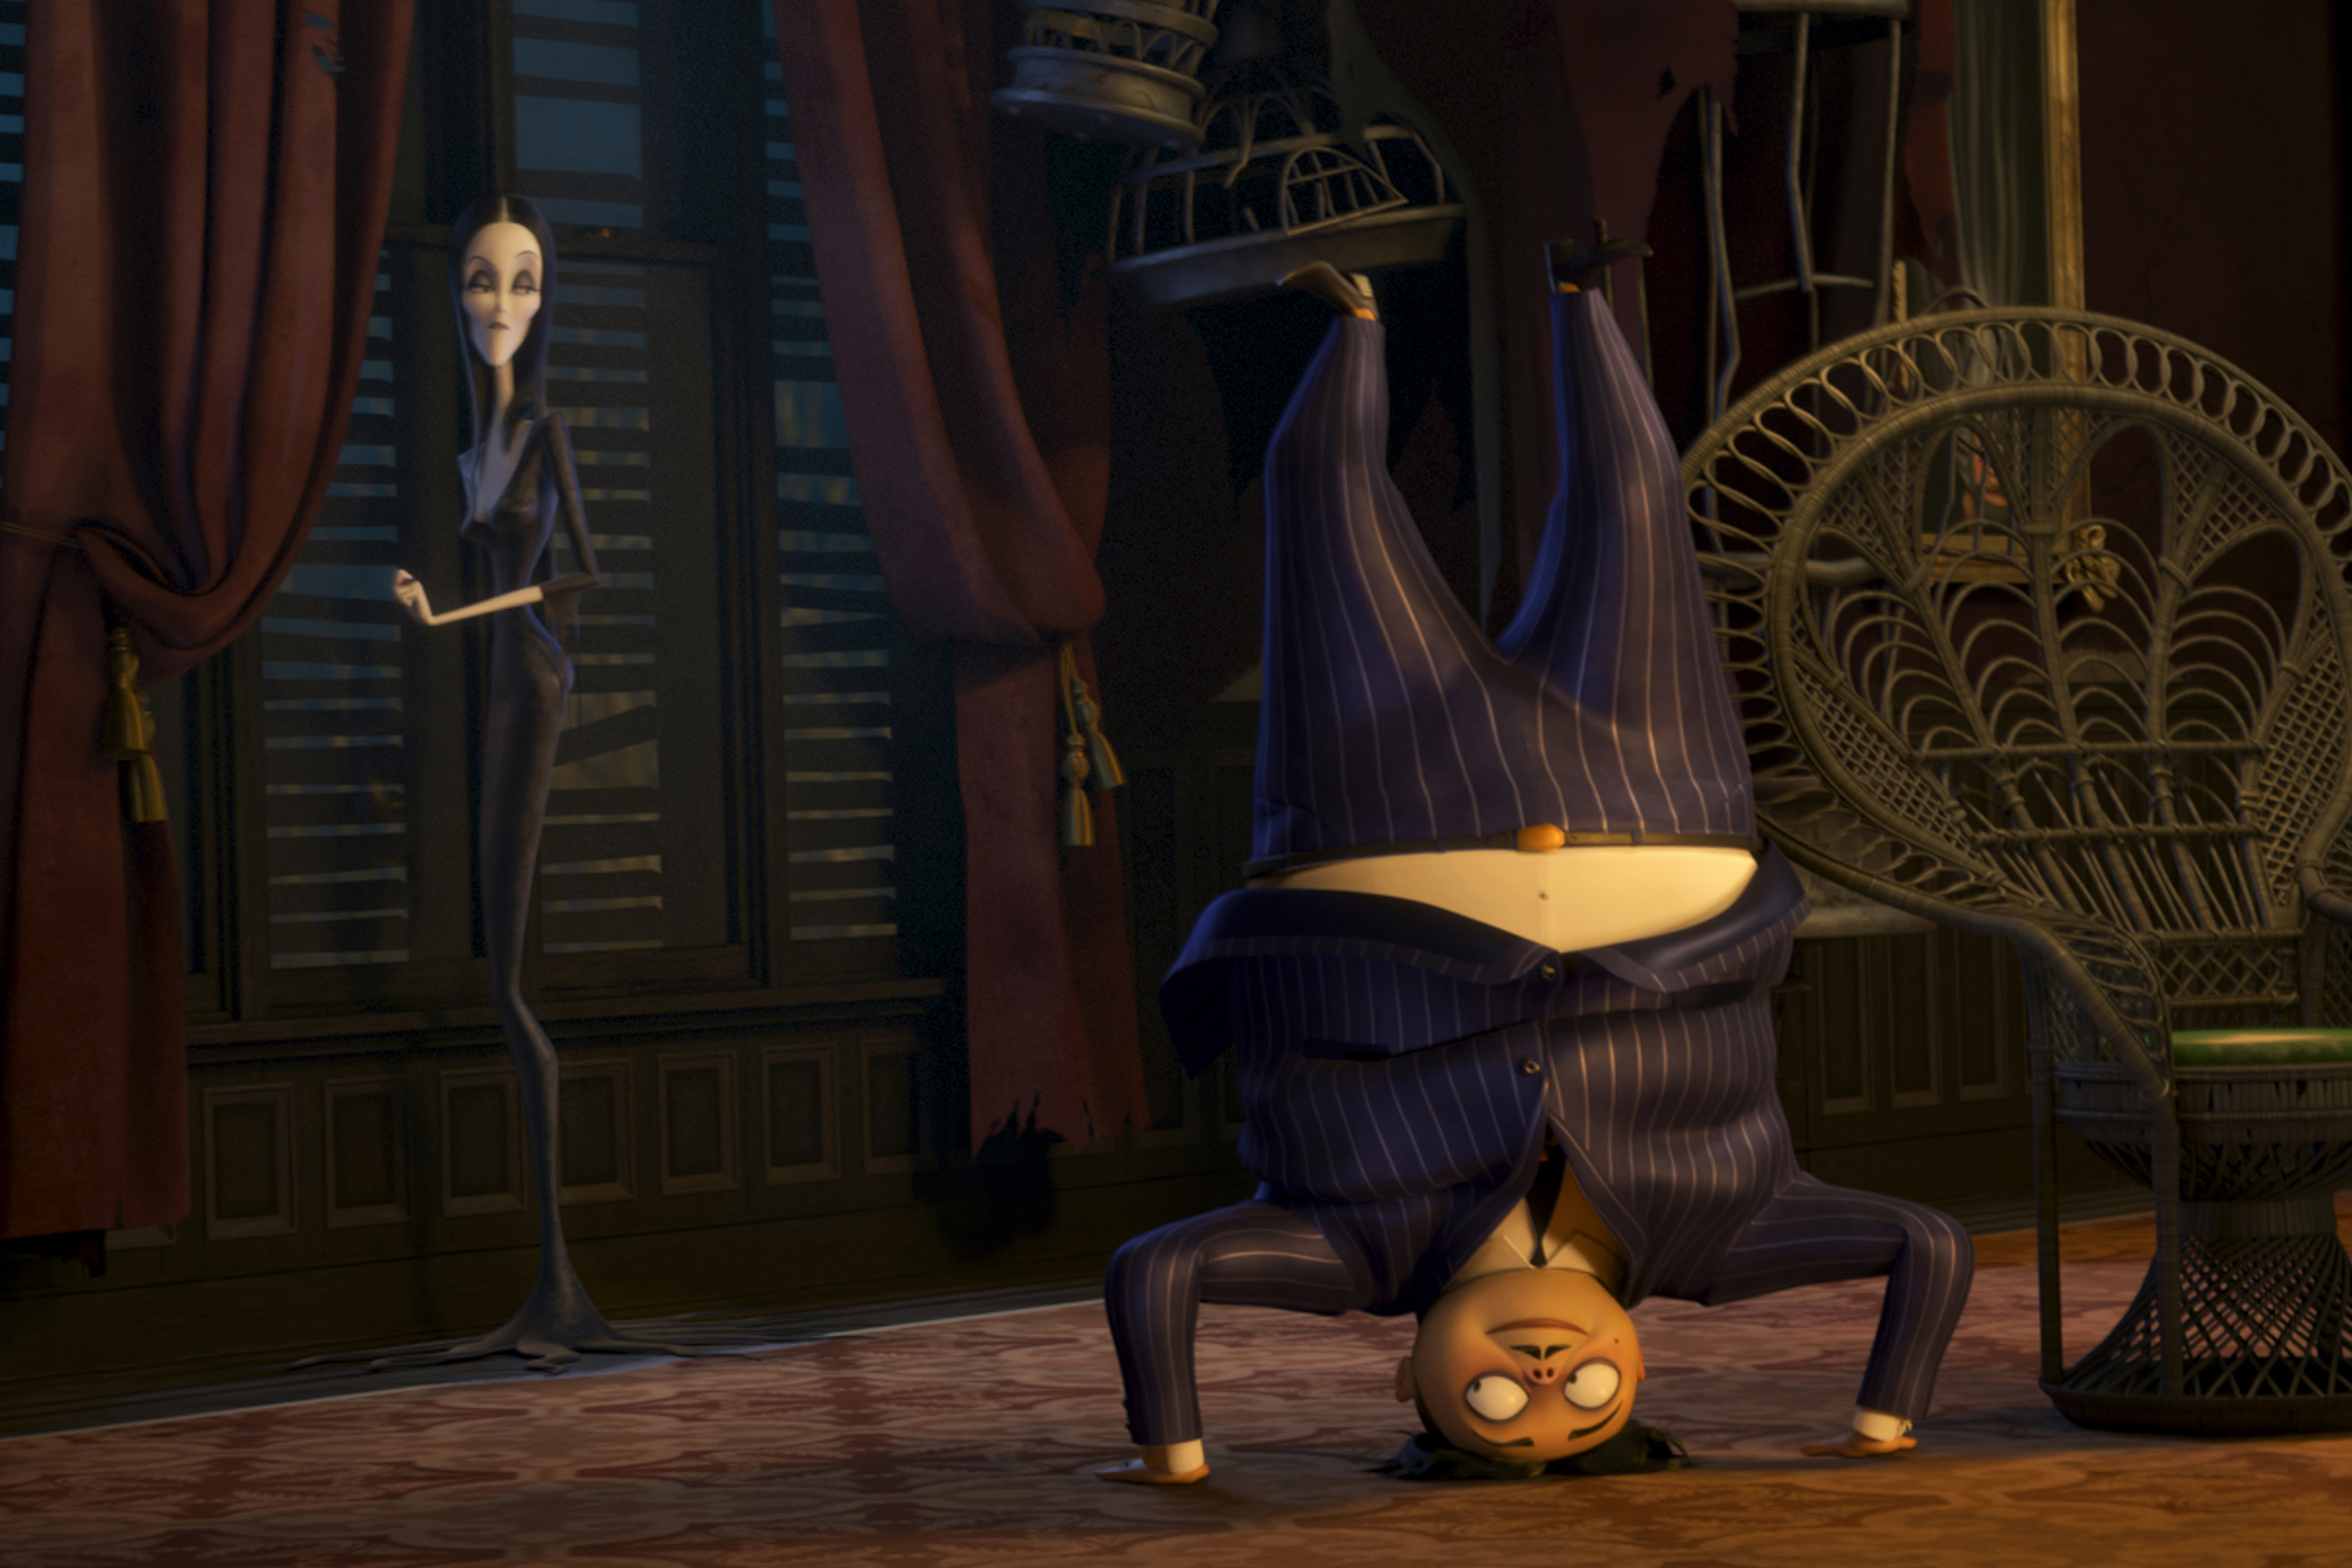 Still 15 for Addams Family, The